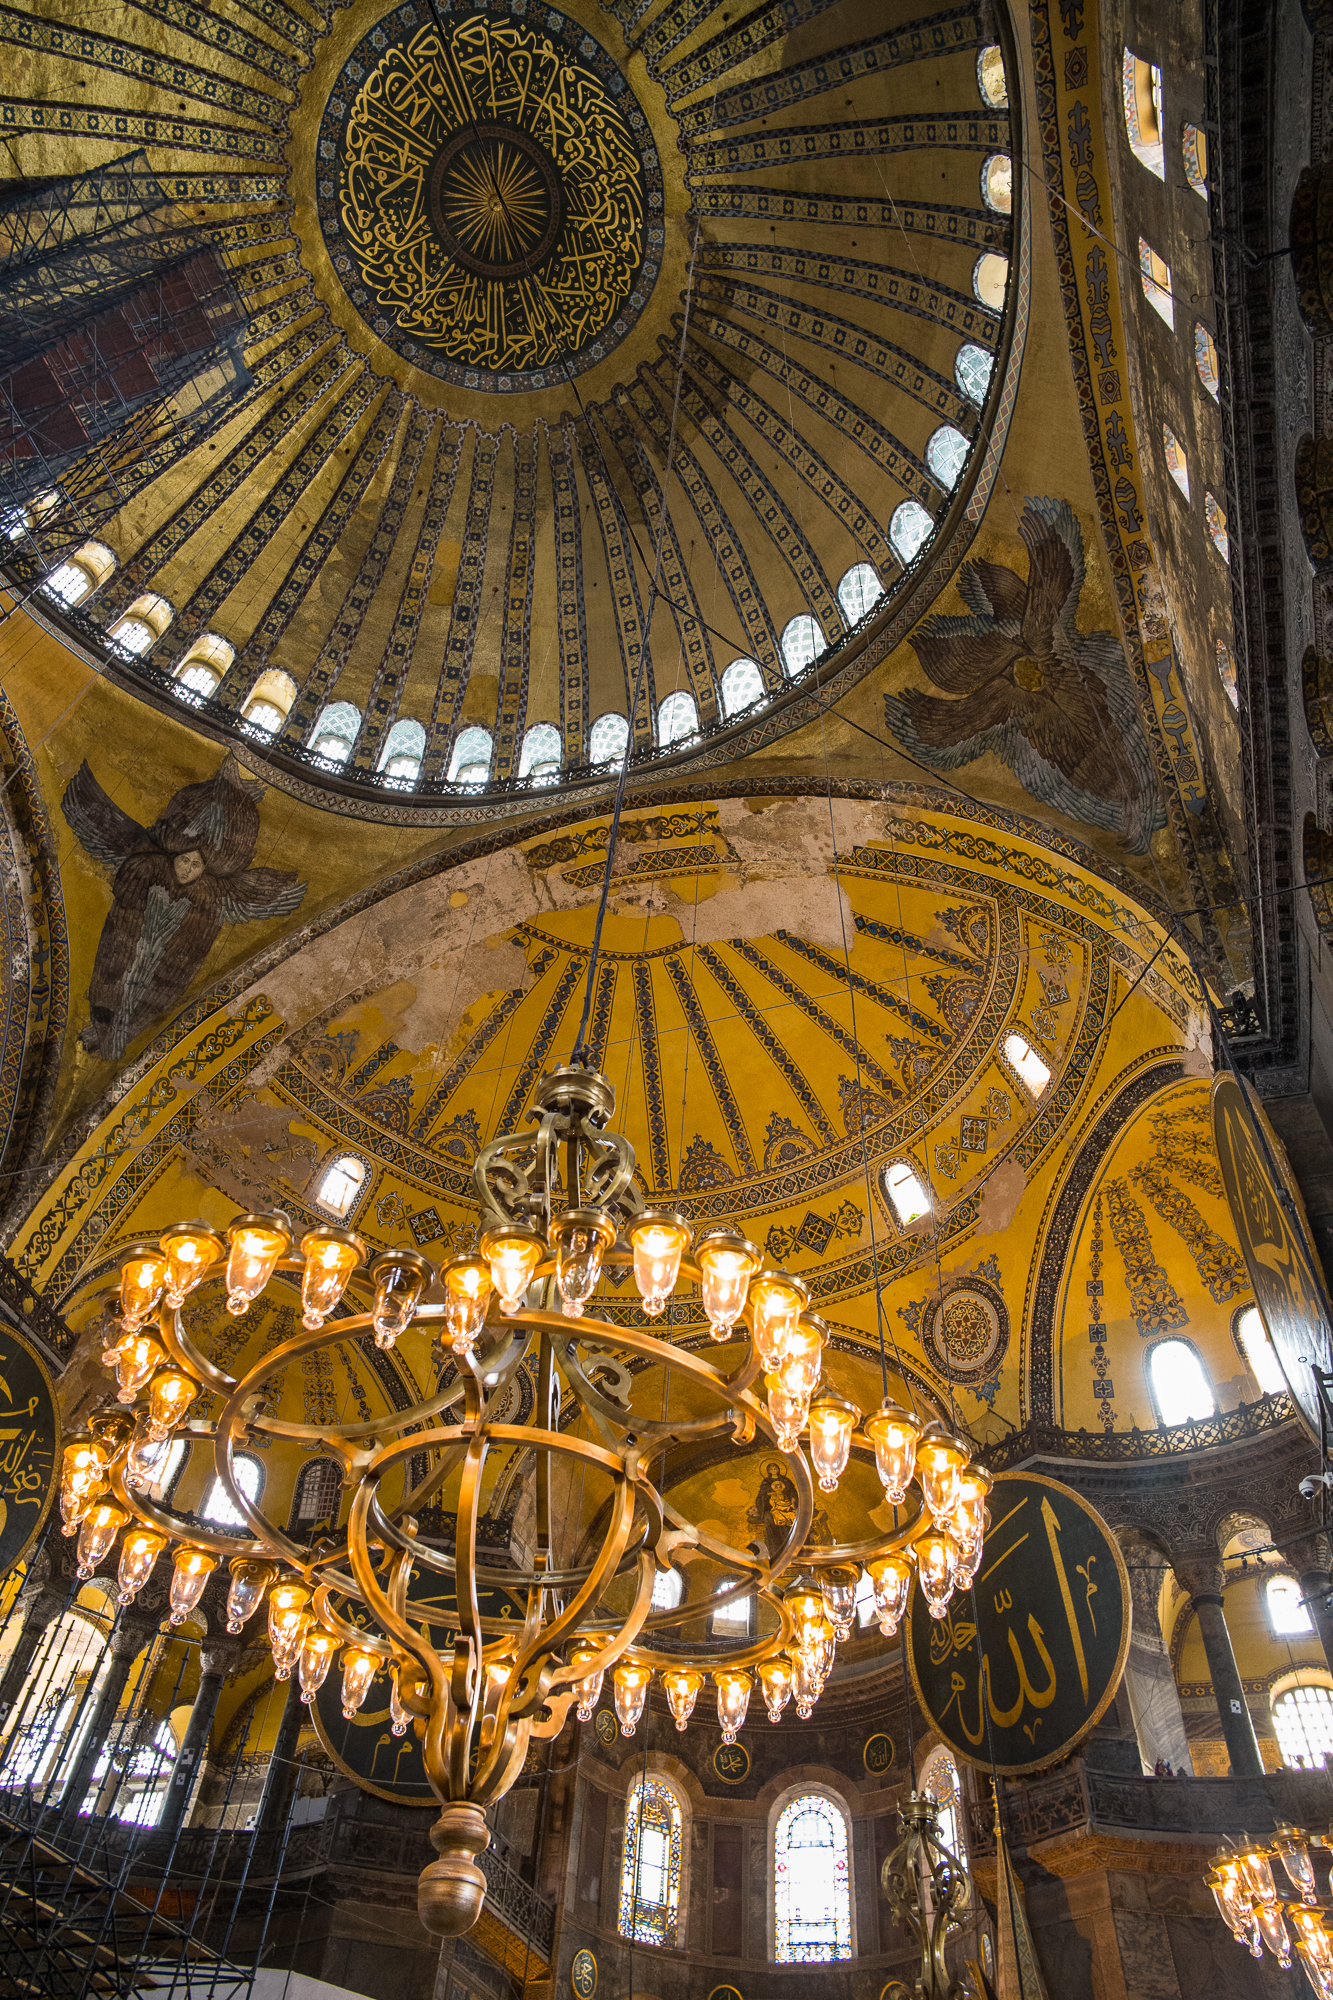 Inside the Hagia Sophia -six winged angels, Islamic calligraphy,mosaics,stained glass and a golden dome 180 feet high